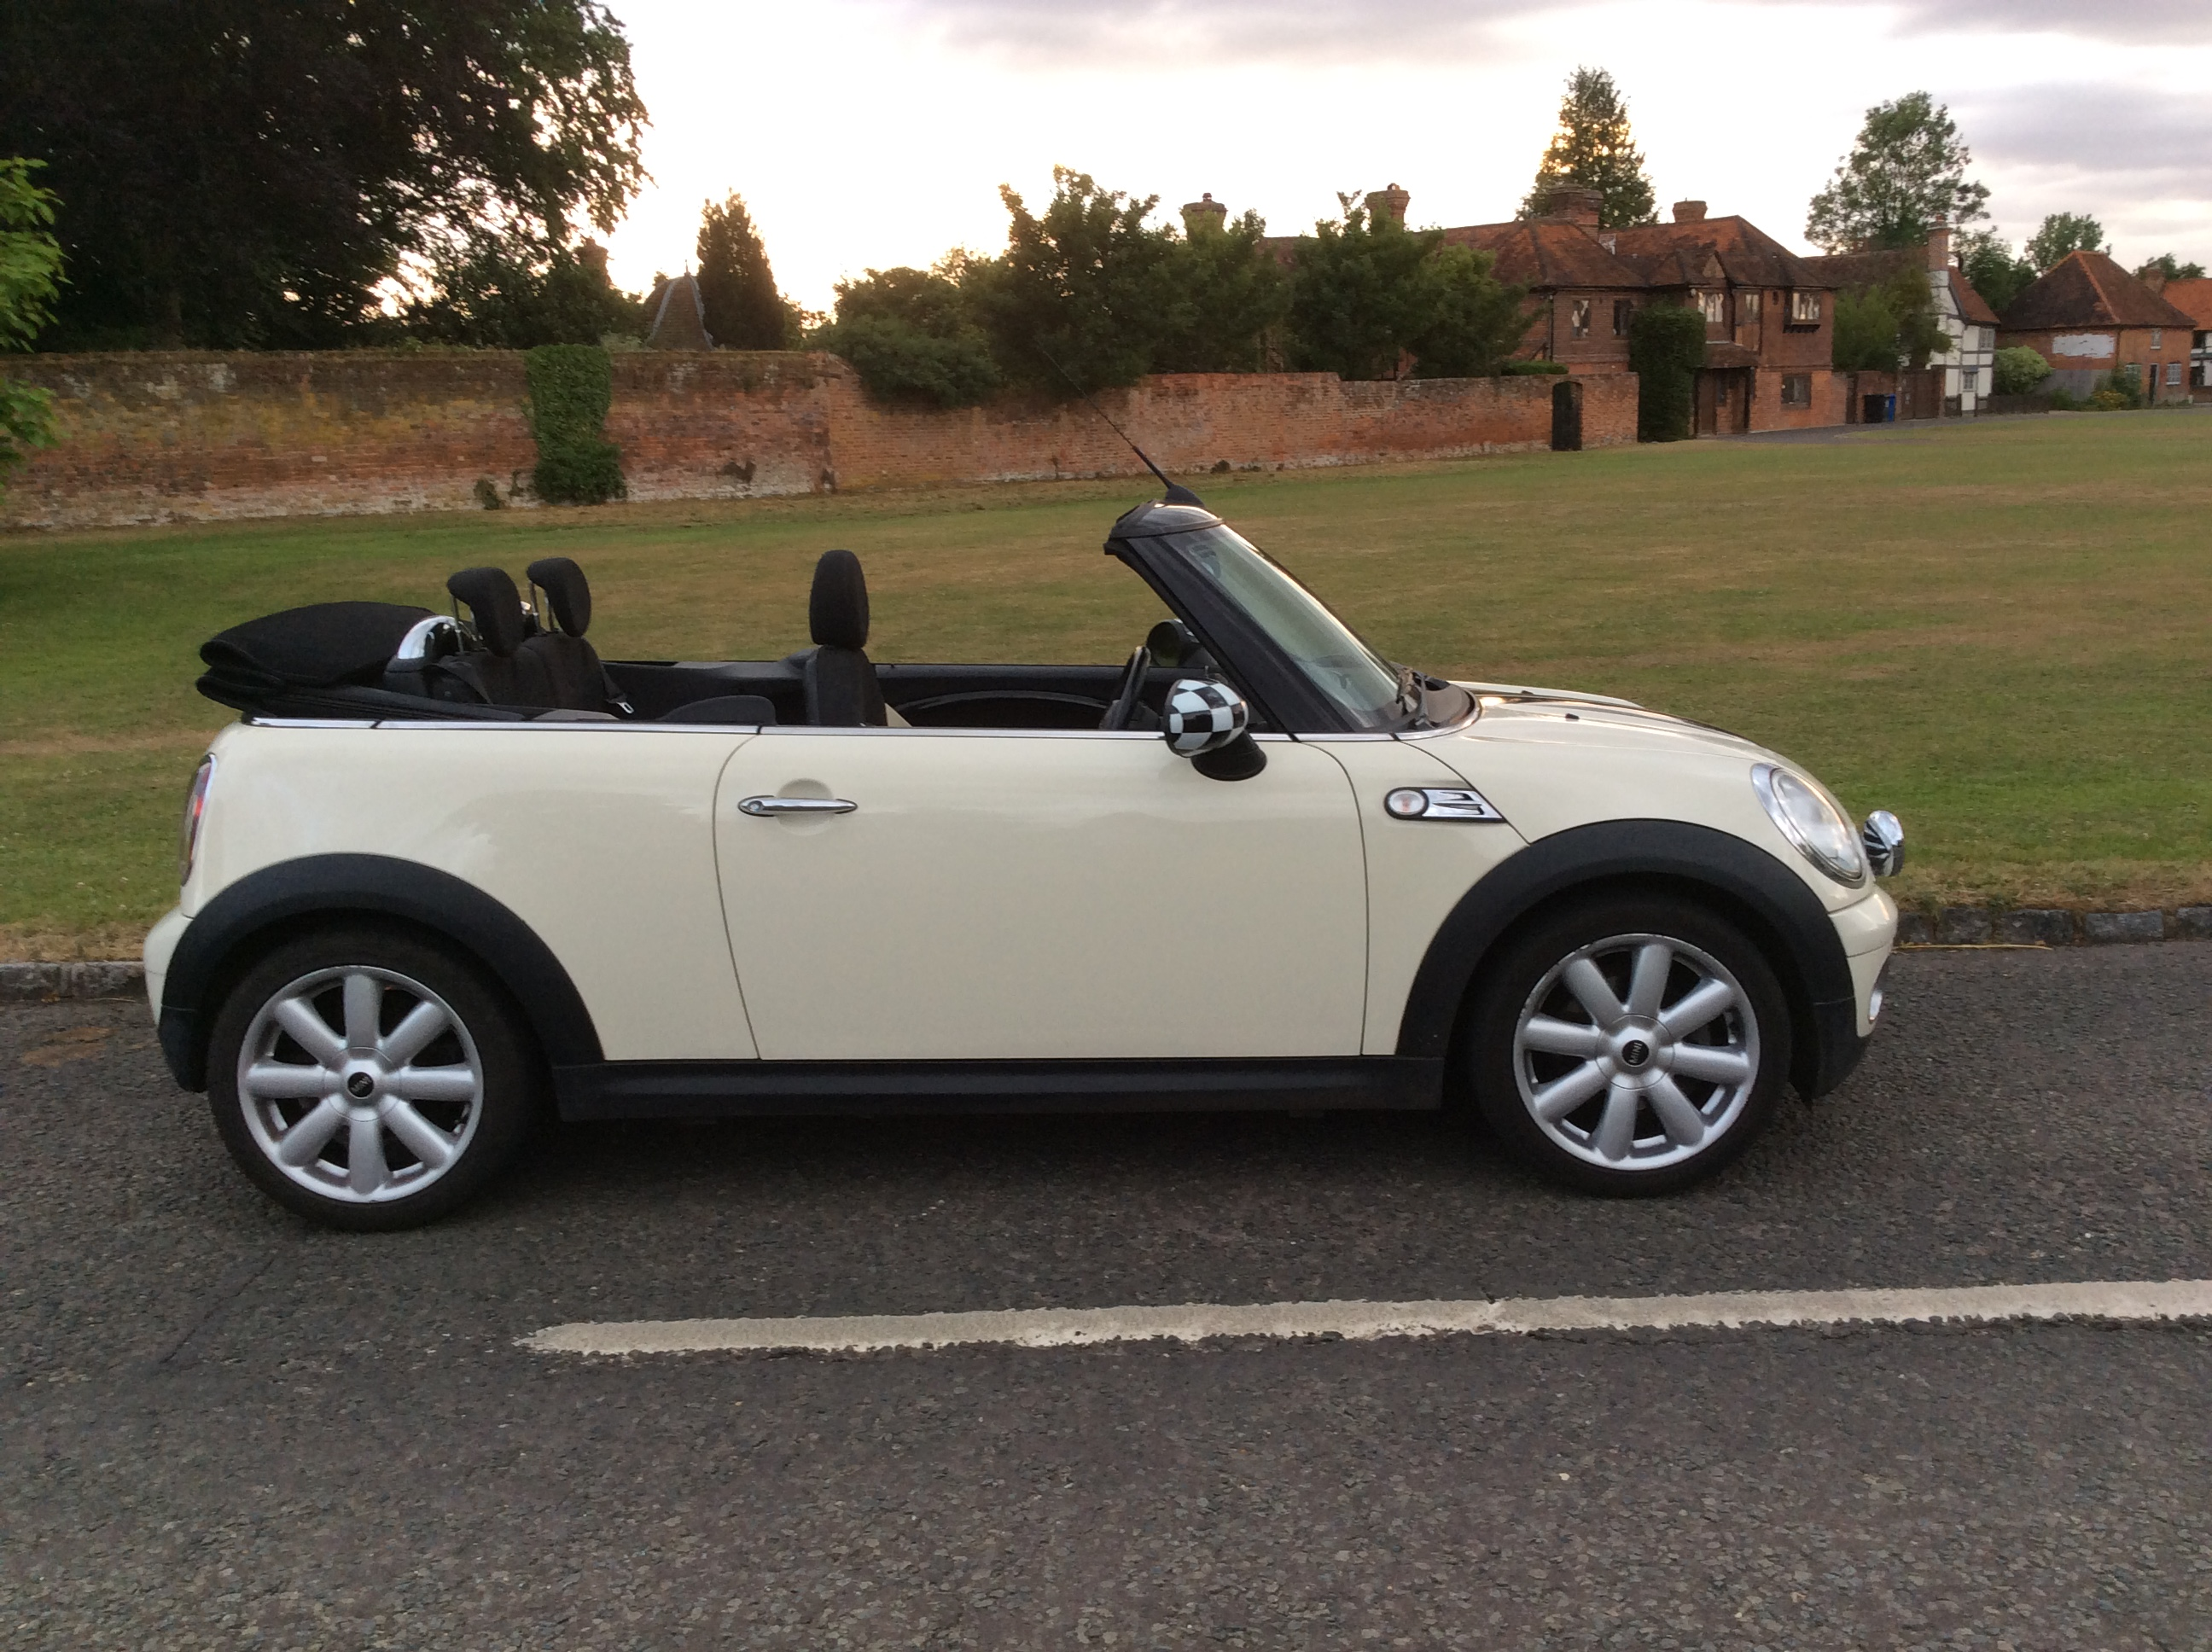 The Very Glamorous Irene Chose This 2009 Mini Cooper Convertible In